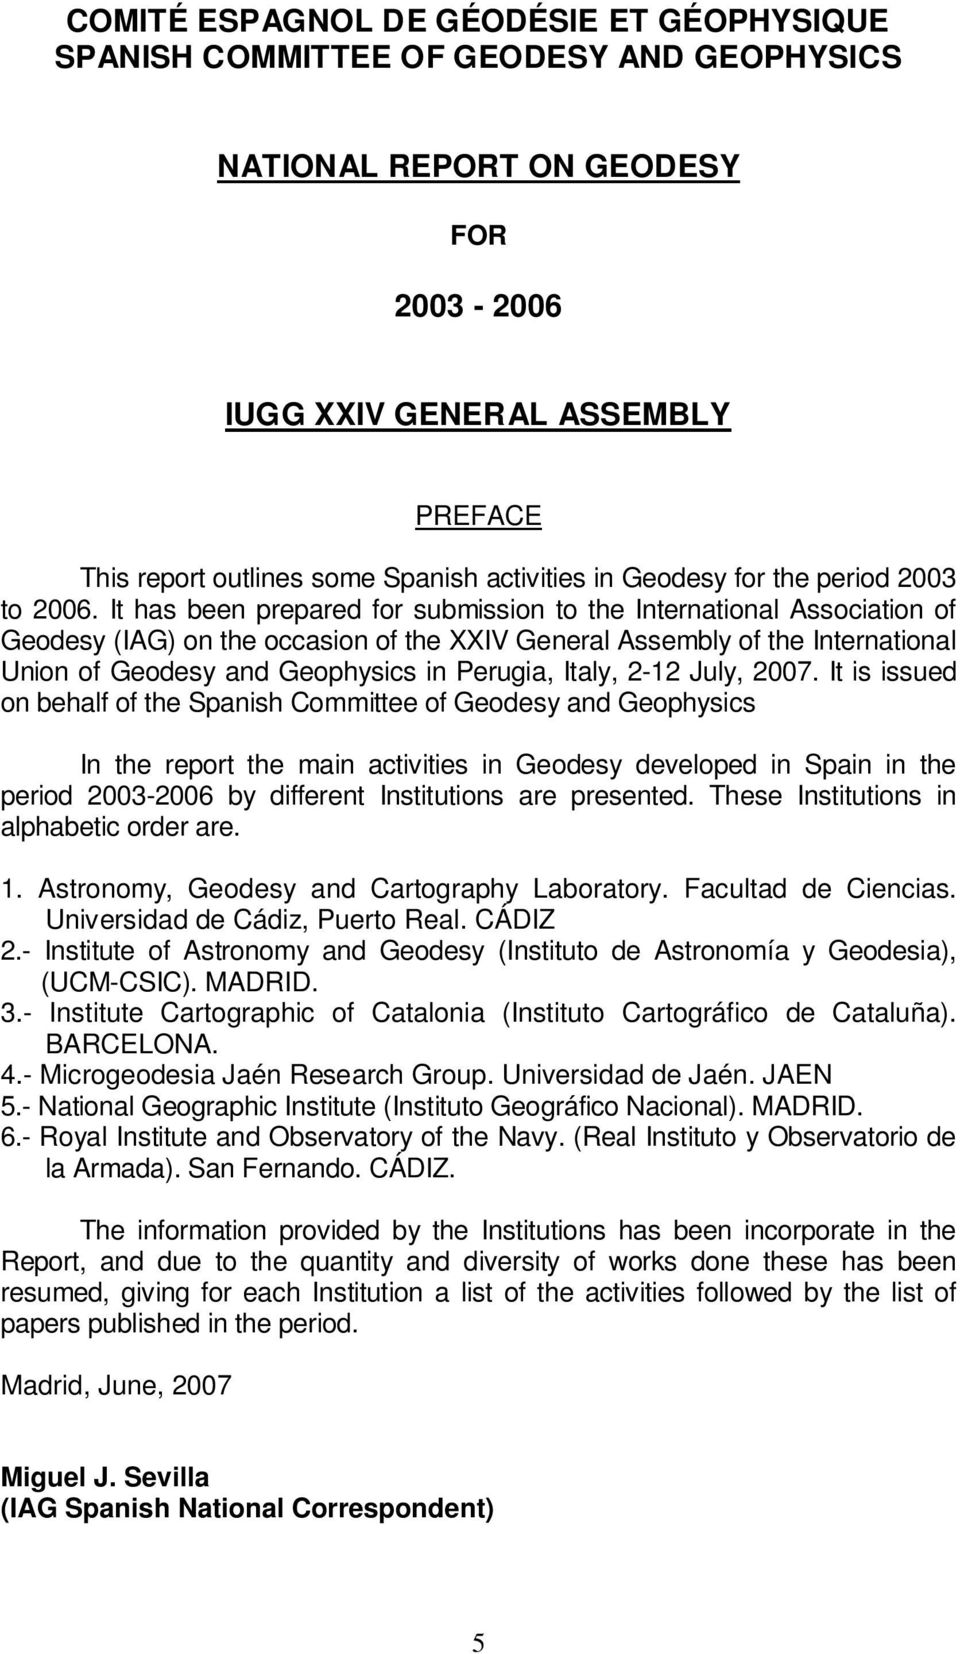 It has been prepared for submission to the International Association of Geodesy (IAG) on the occasion of the XXIV General Assembly of the International Union of Geodesy and Geophysics in Perugia,